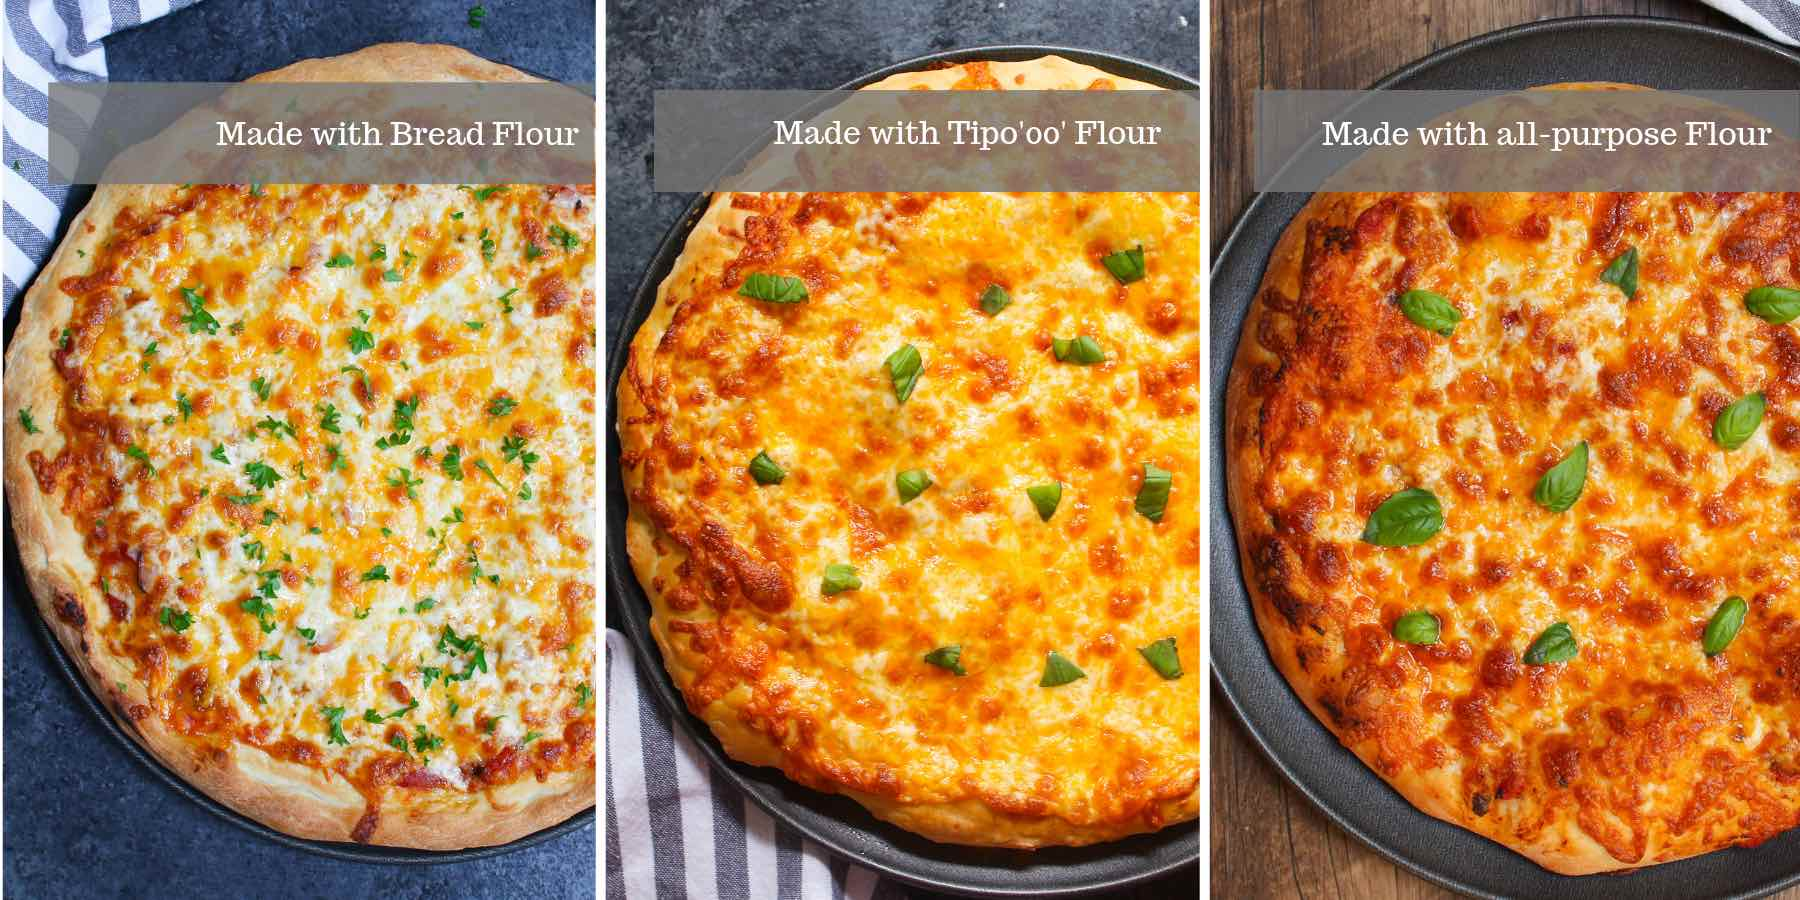 Comparison of pizzas made with 3 different types of flour: from left to right are dough made with bread flour, Tipo 'oo' and all-purpose flour